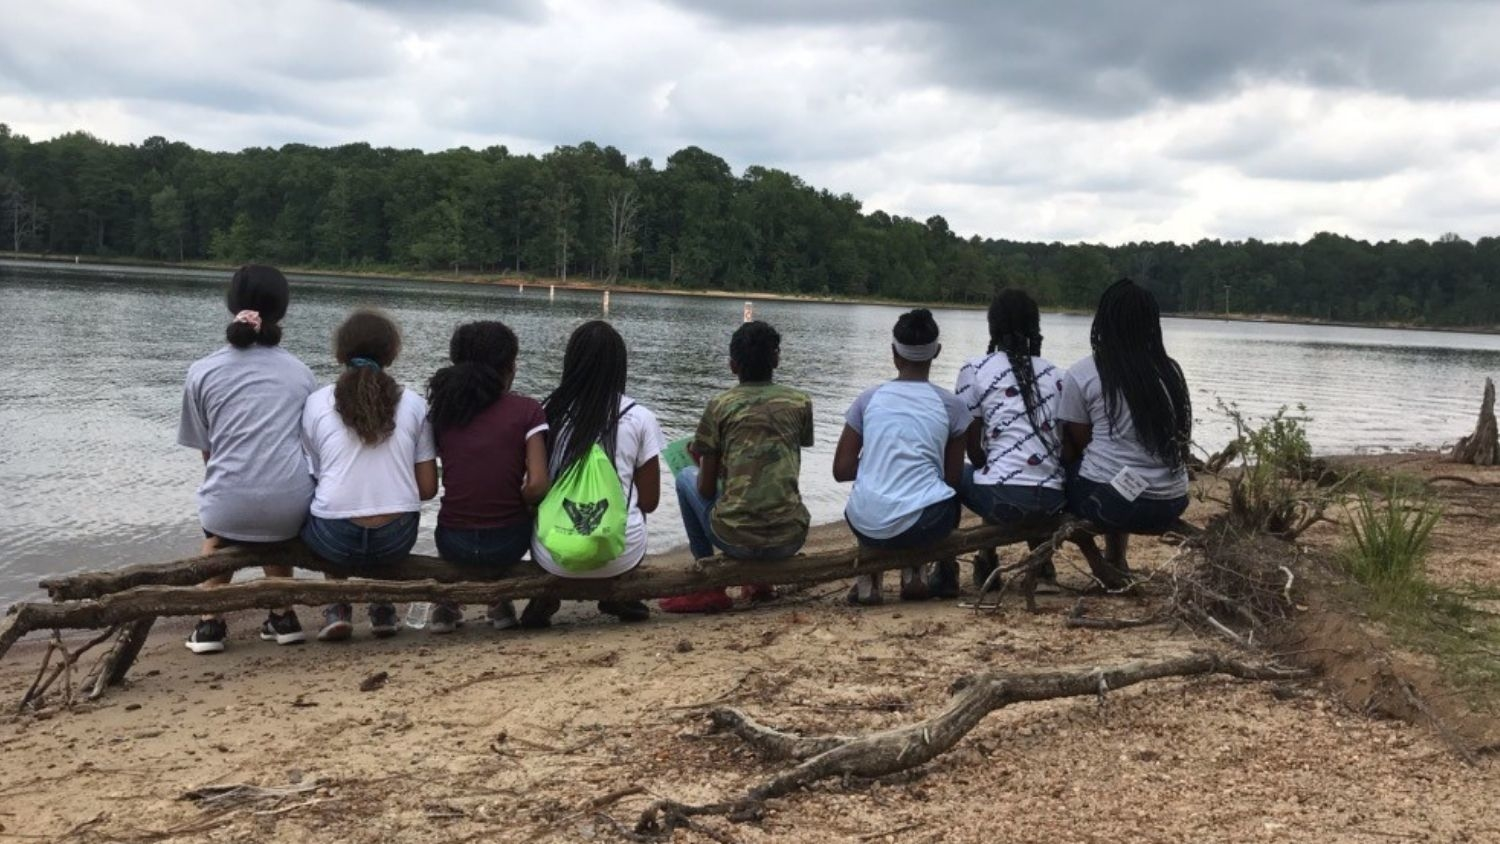 Ecologists out in nature - Black Ecologists Look to Offer Support, Recruit Next Generation - Forestry Department at NCState University